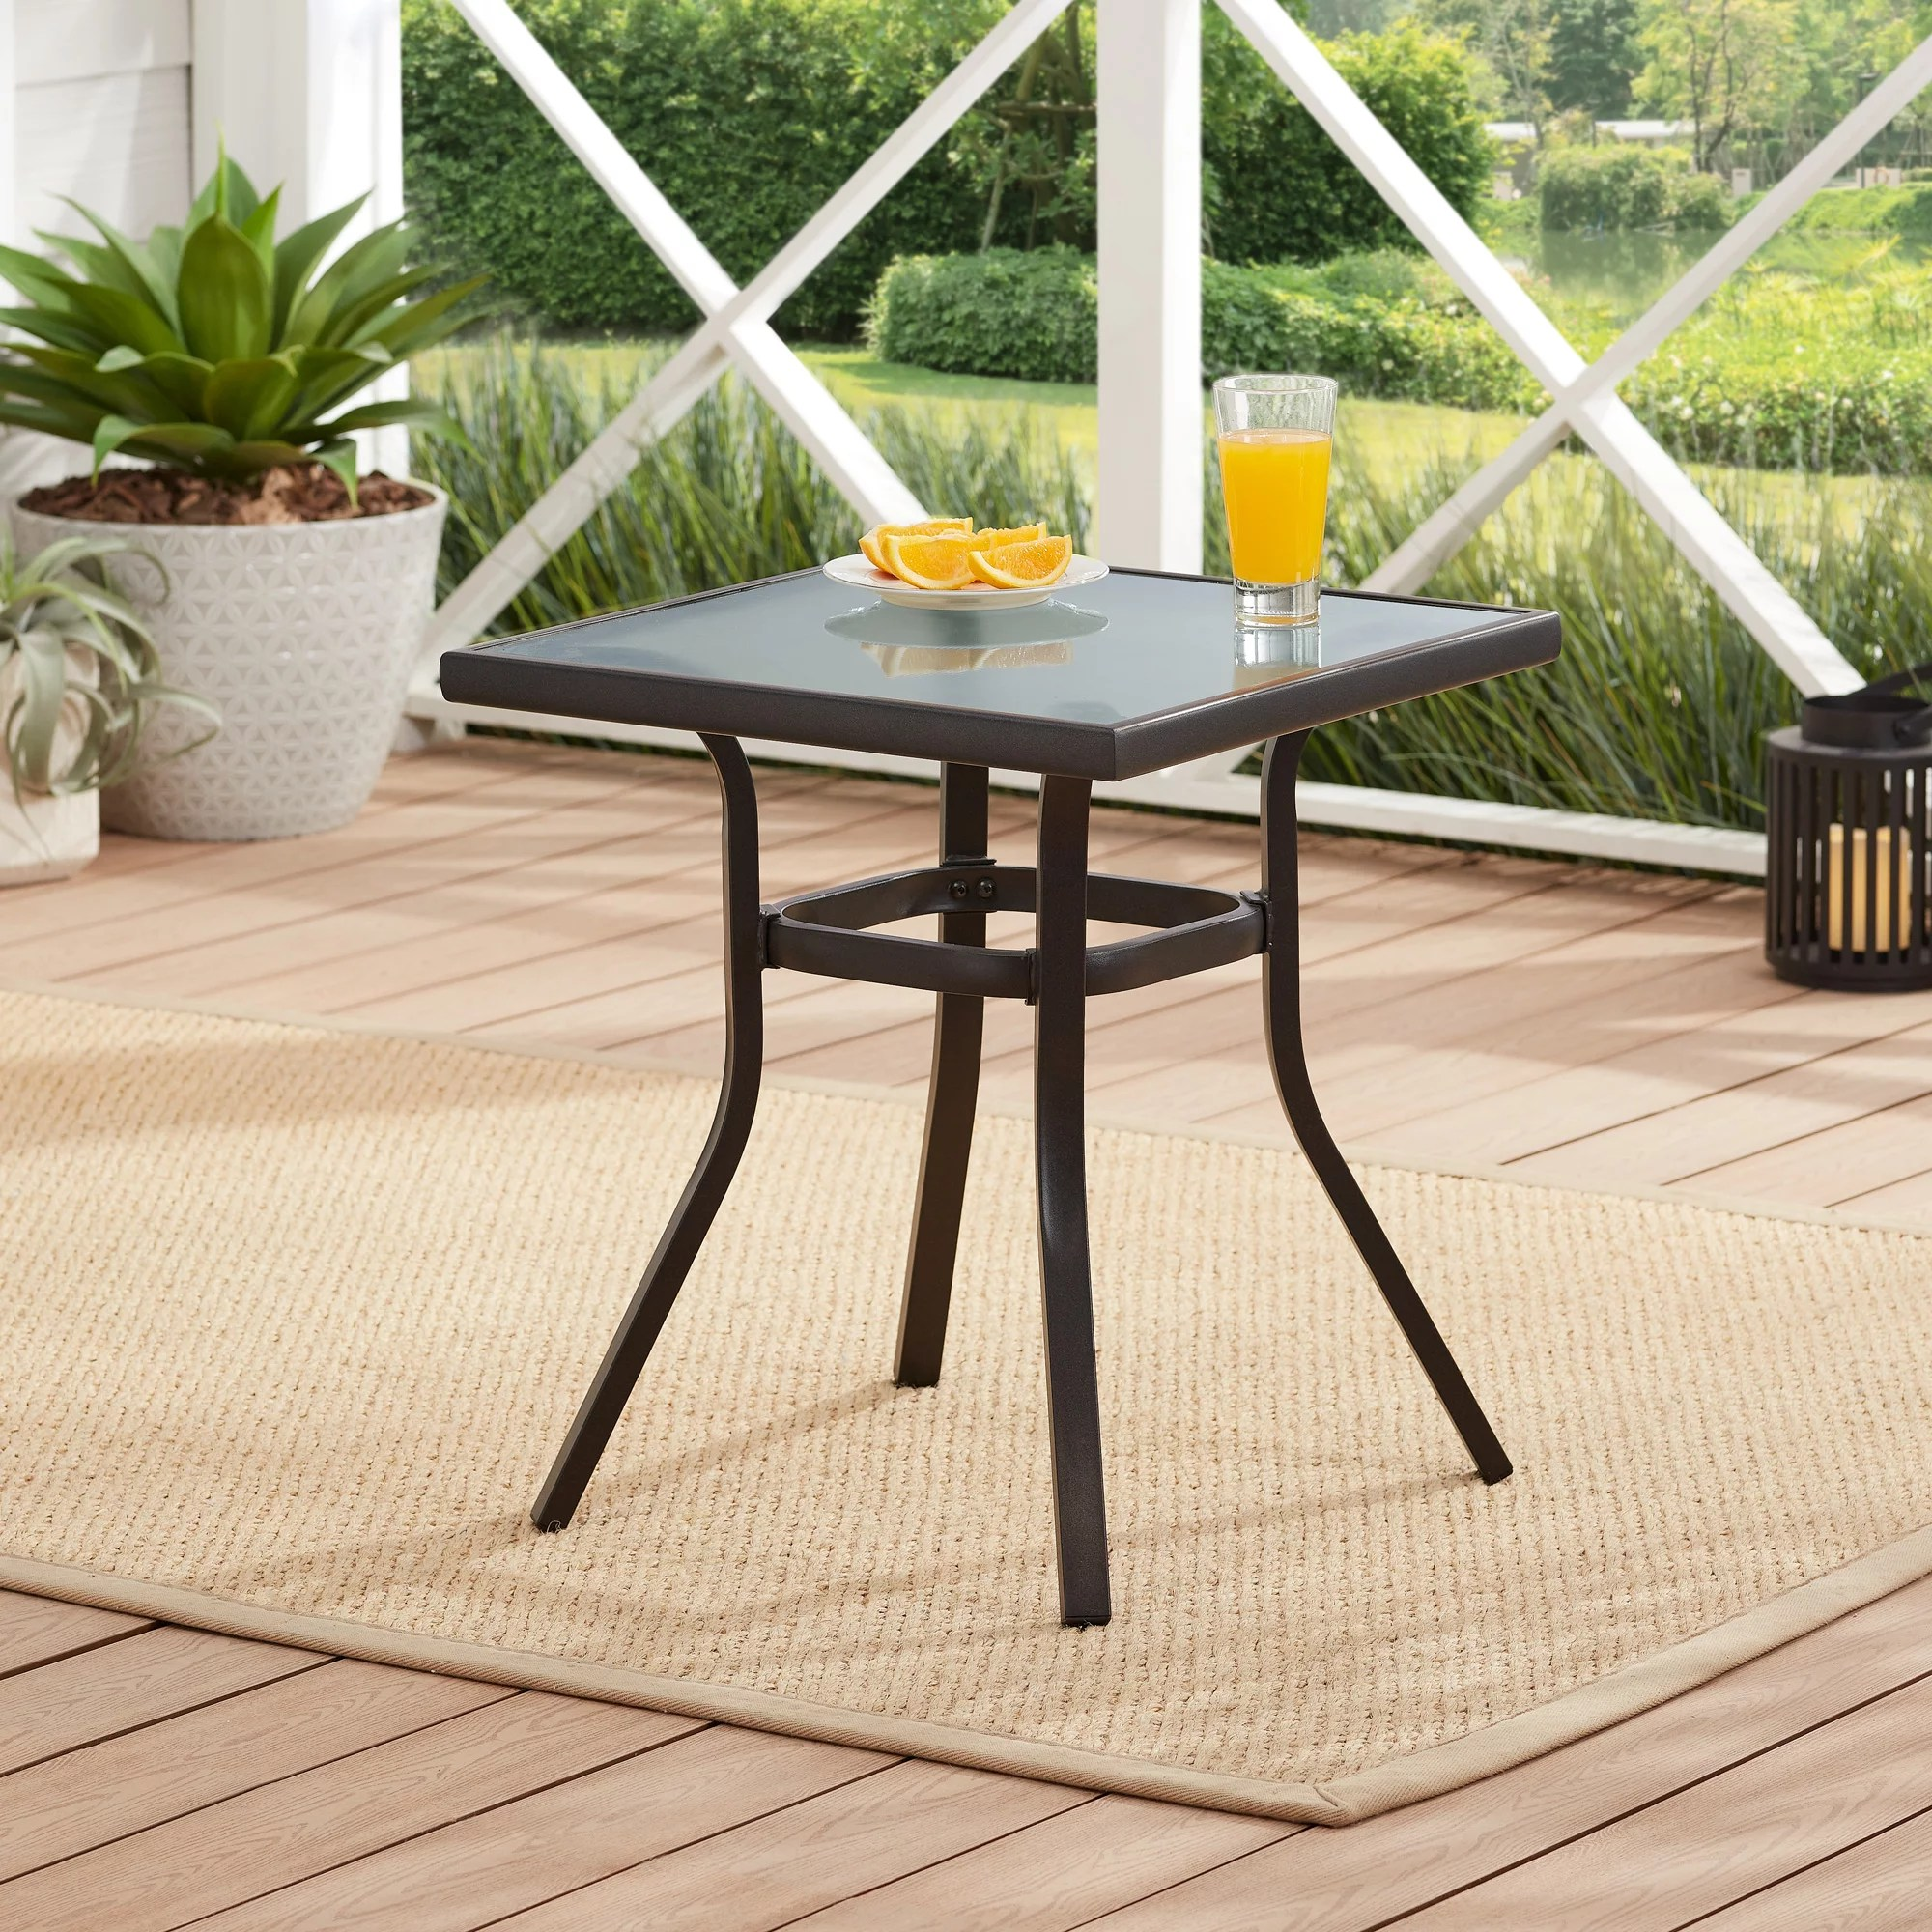 mainstays heritage park 21 square glass top outdoor patio side table black walmart com